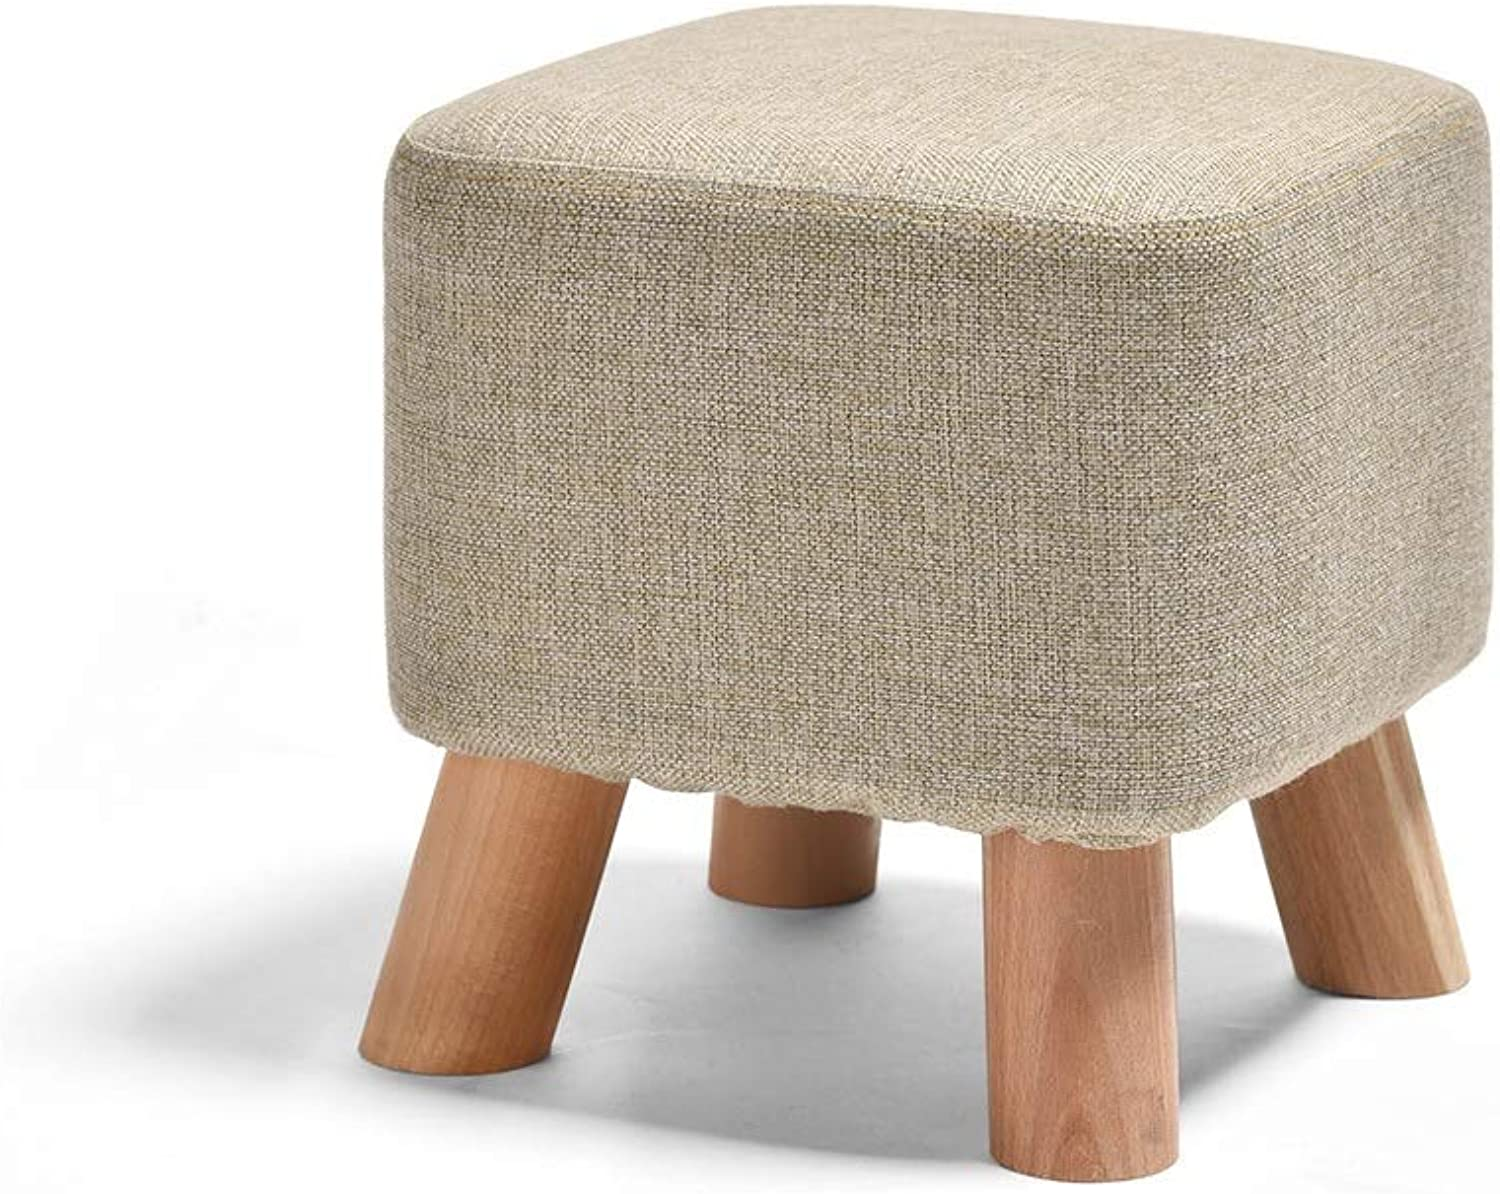 Sofa Stool, Wood Support Upholstered Footstools and Pouffes Fabric Chair 4 Legs Living Room Bench Milking Foot Stool (color   C)